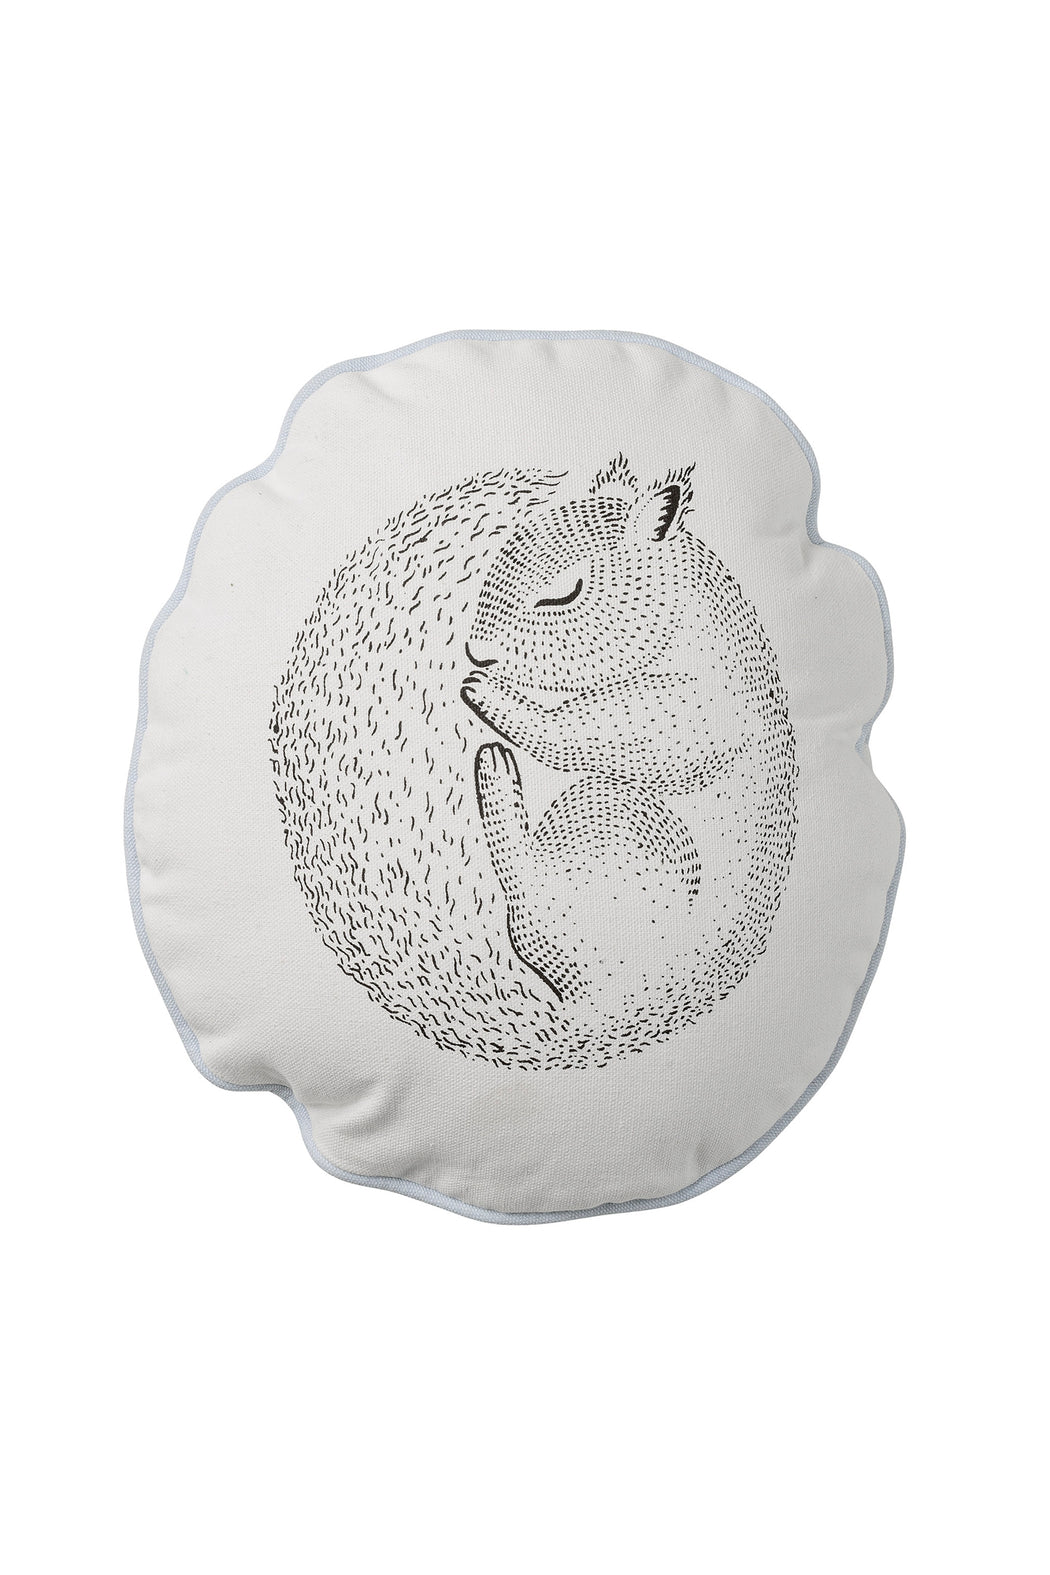 Squirrel Cushion, Cushion, Bloomingville - 3LittlePicks